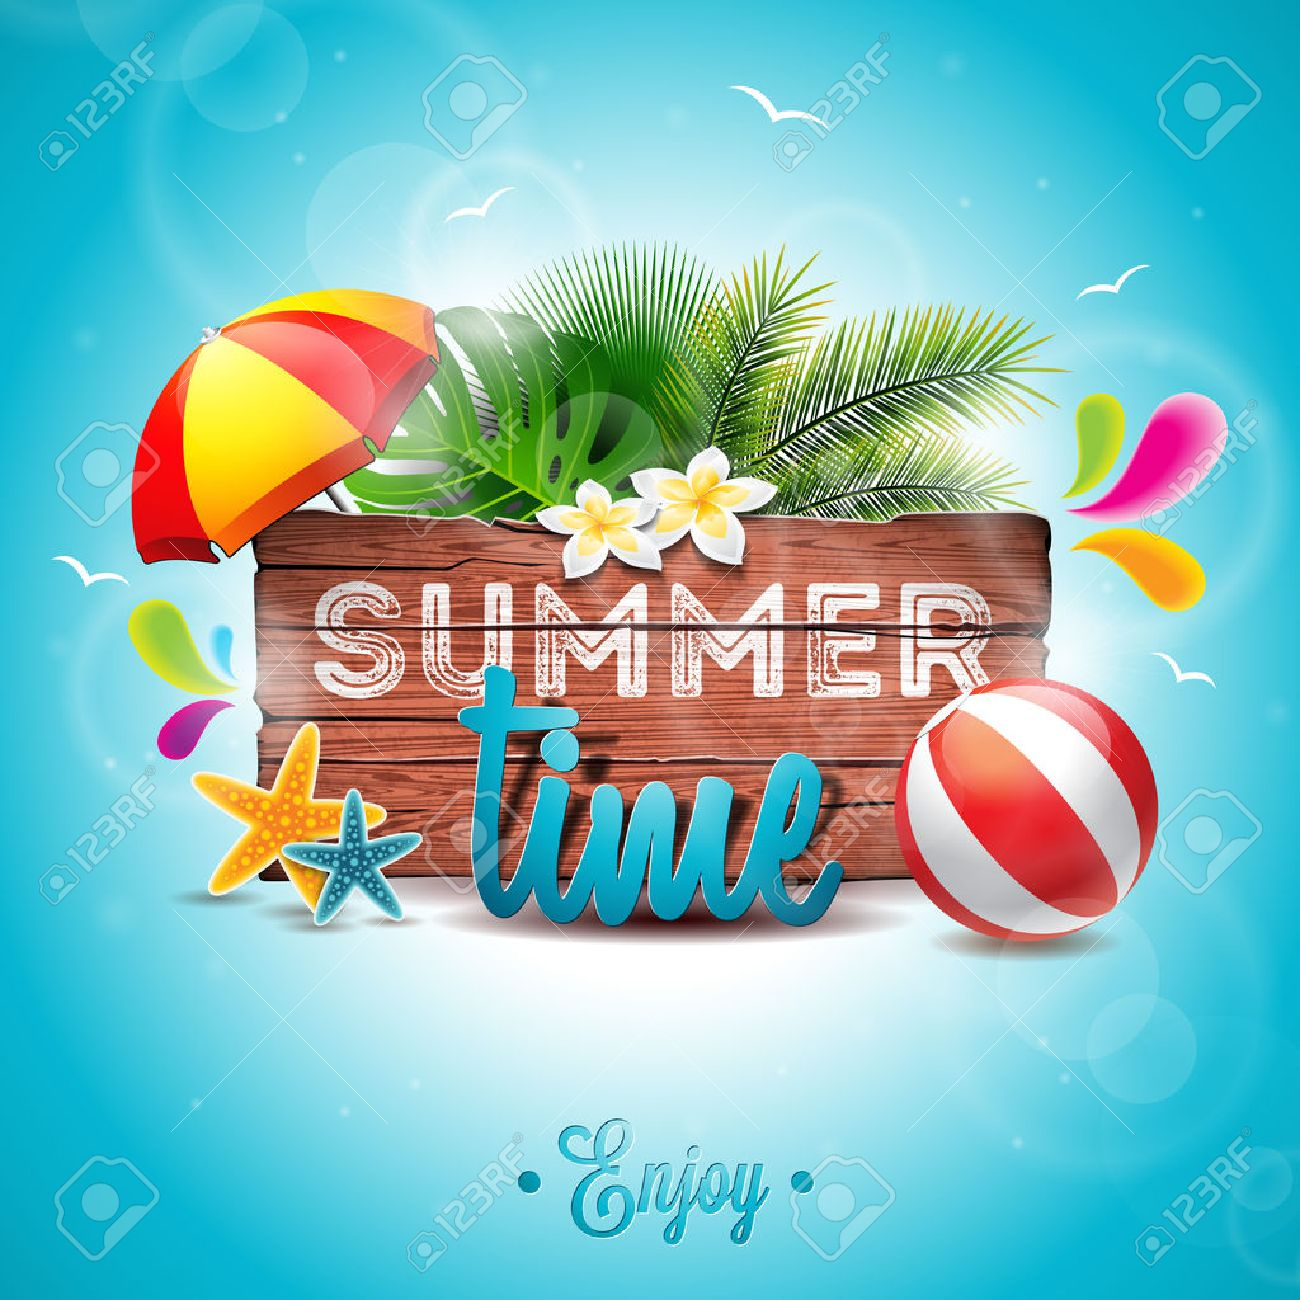 Summer Time Holiday typographic illustration on vintage wood background. Tropical plants, flower, beach ball and sunshade. - 57961511